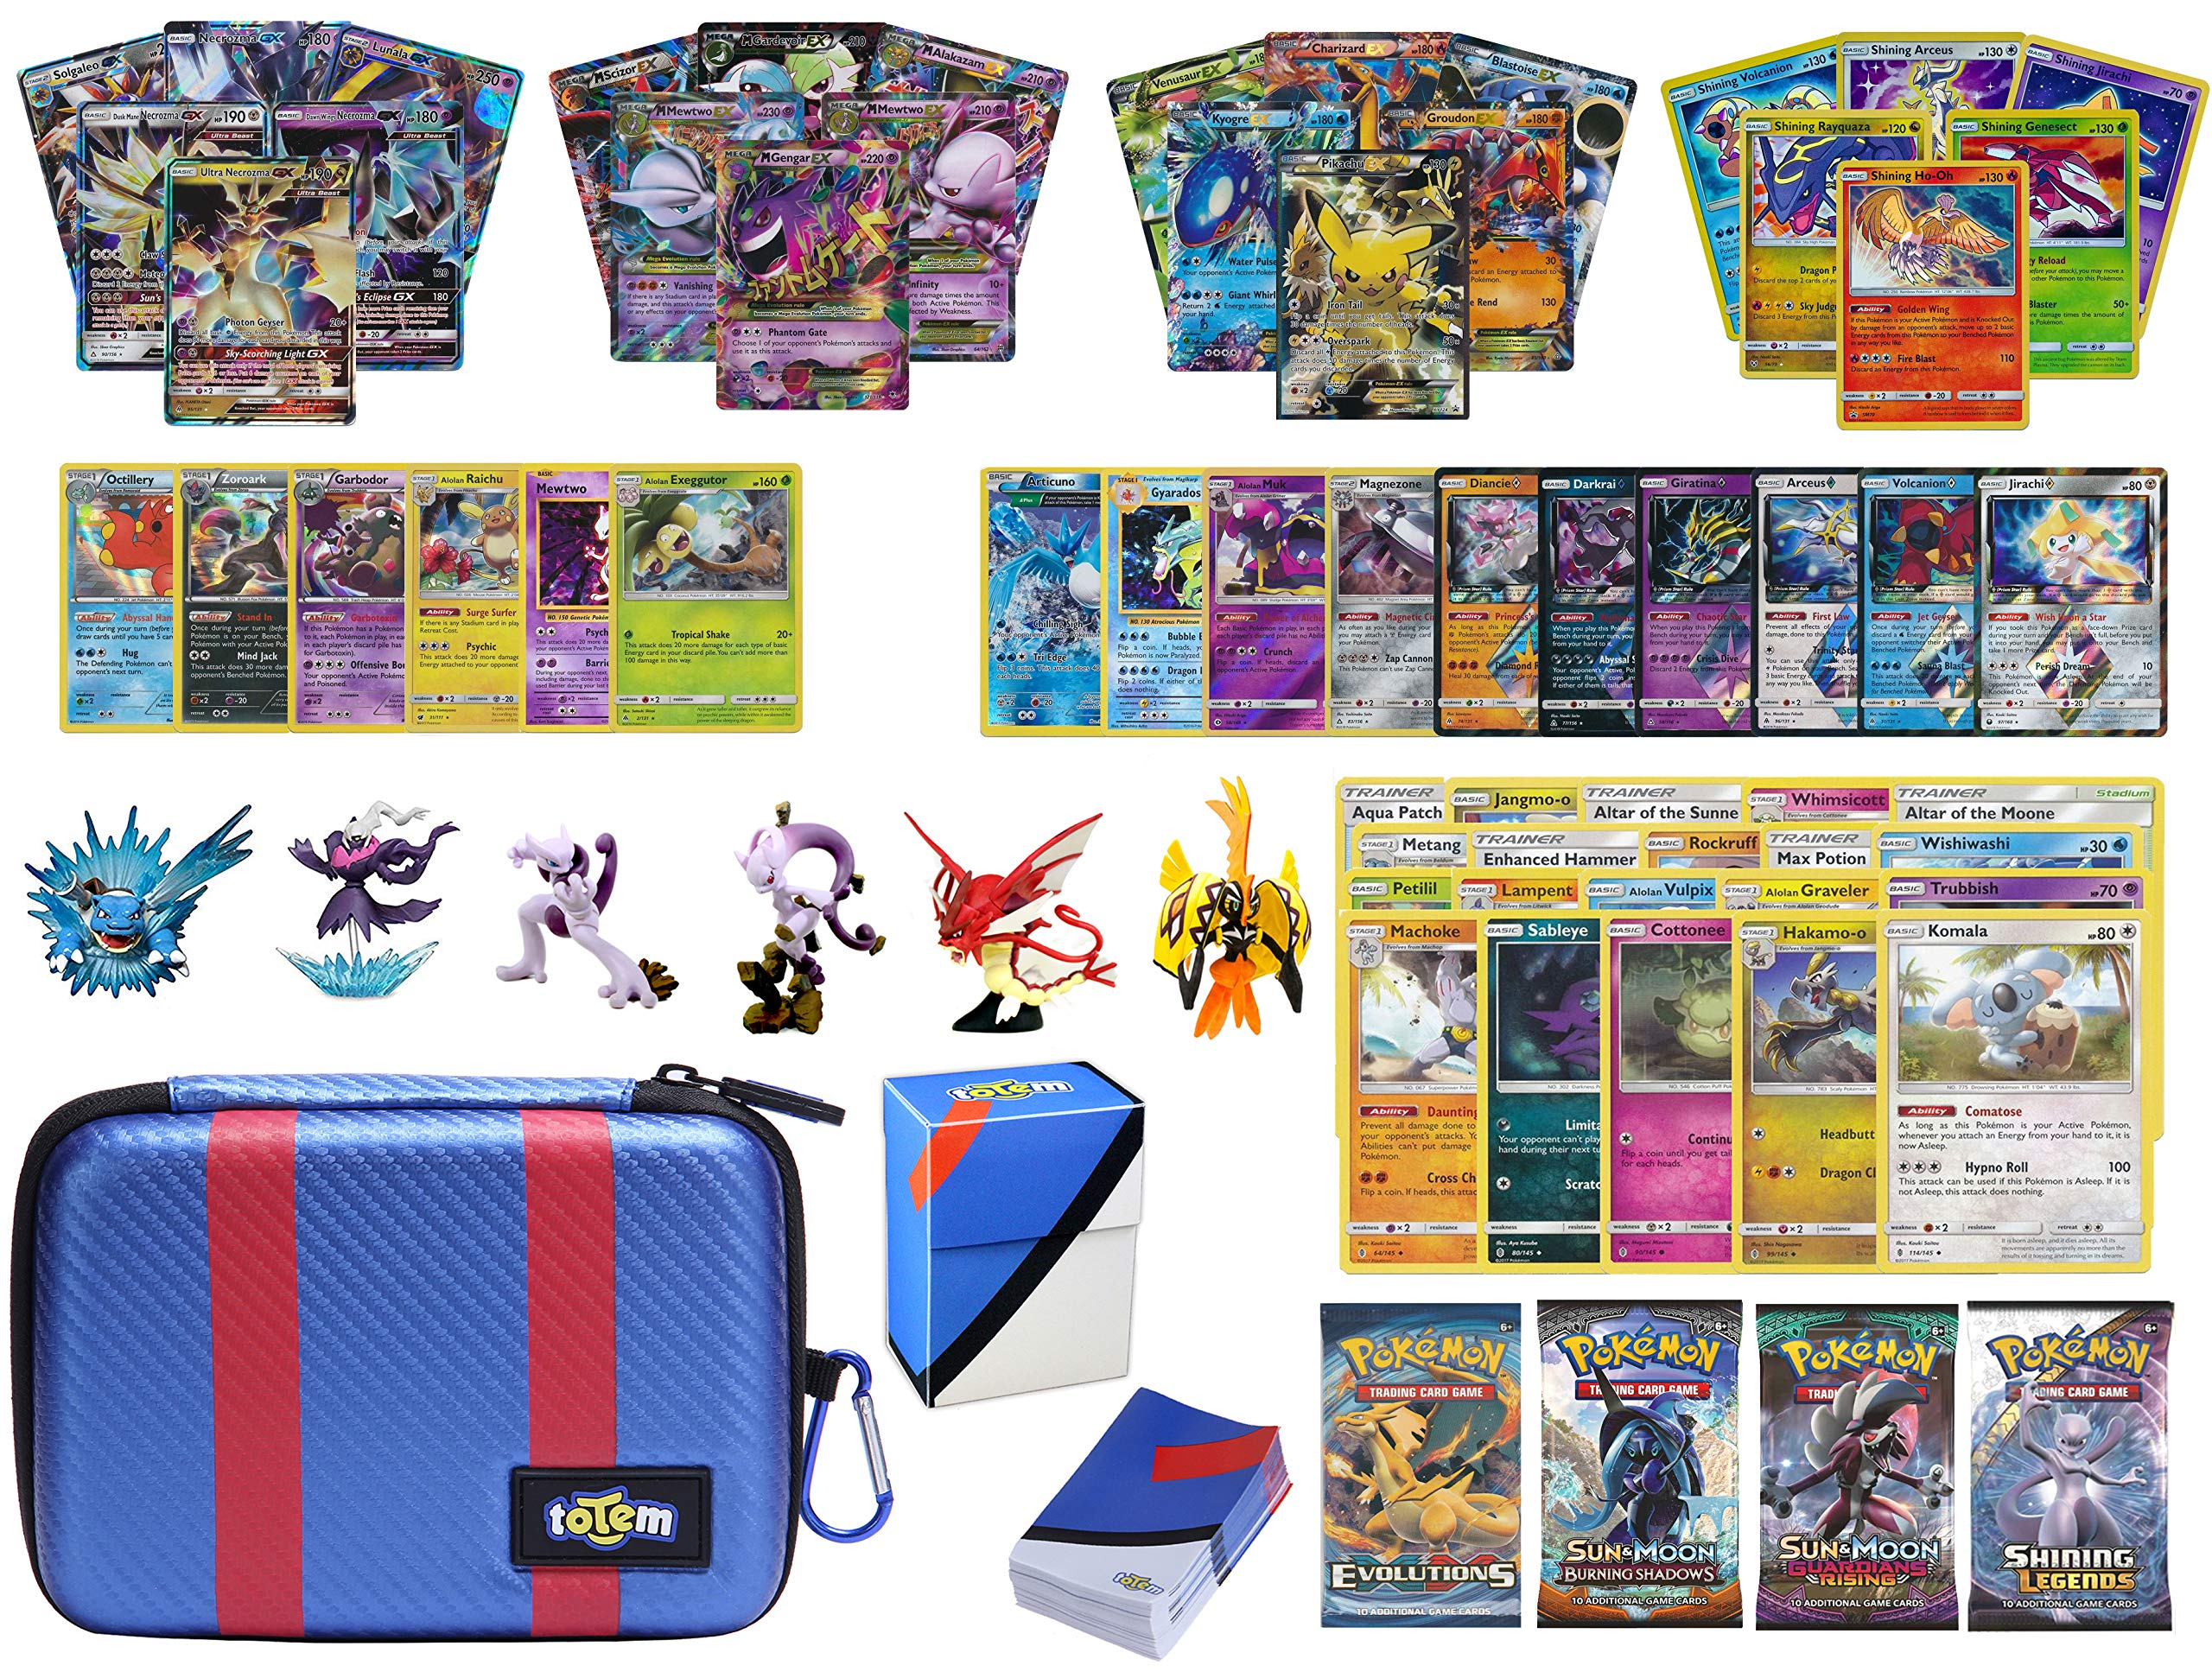 Totem World Pokemon Premium Collection 100 Cards with GX Mega EX Shining Holo 10 Rares 4 Booster Pack - 100 Sleeves - Great Ball Theme Card Case - Deck Box and Figure